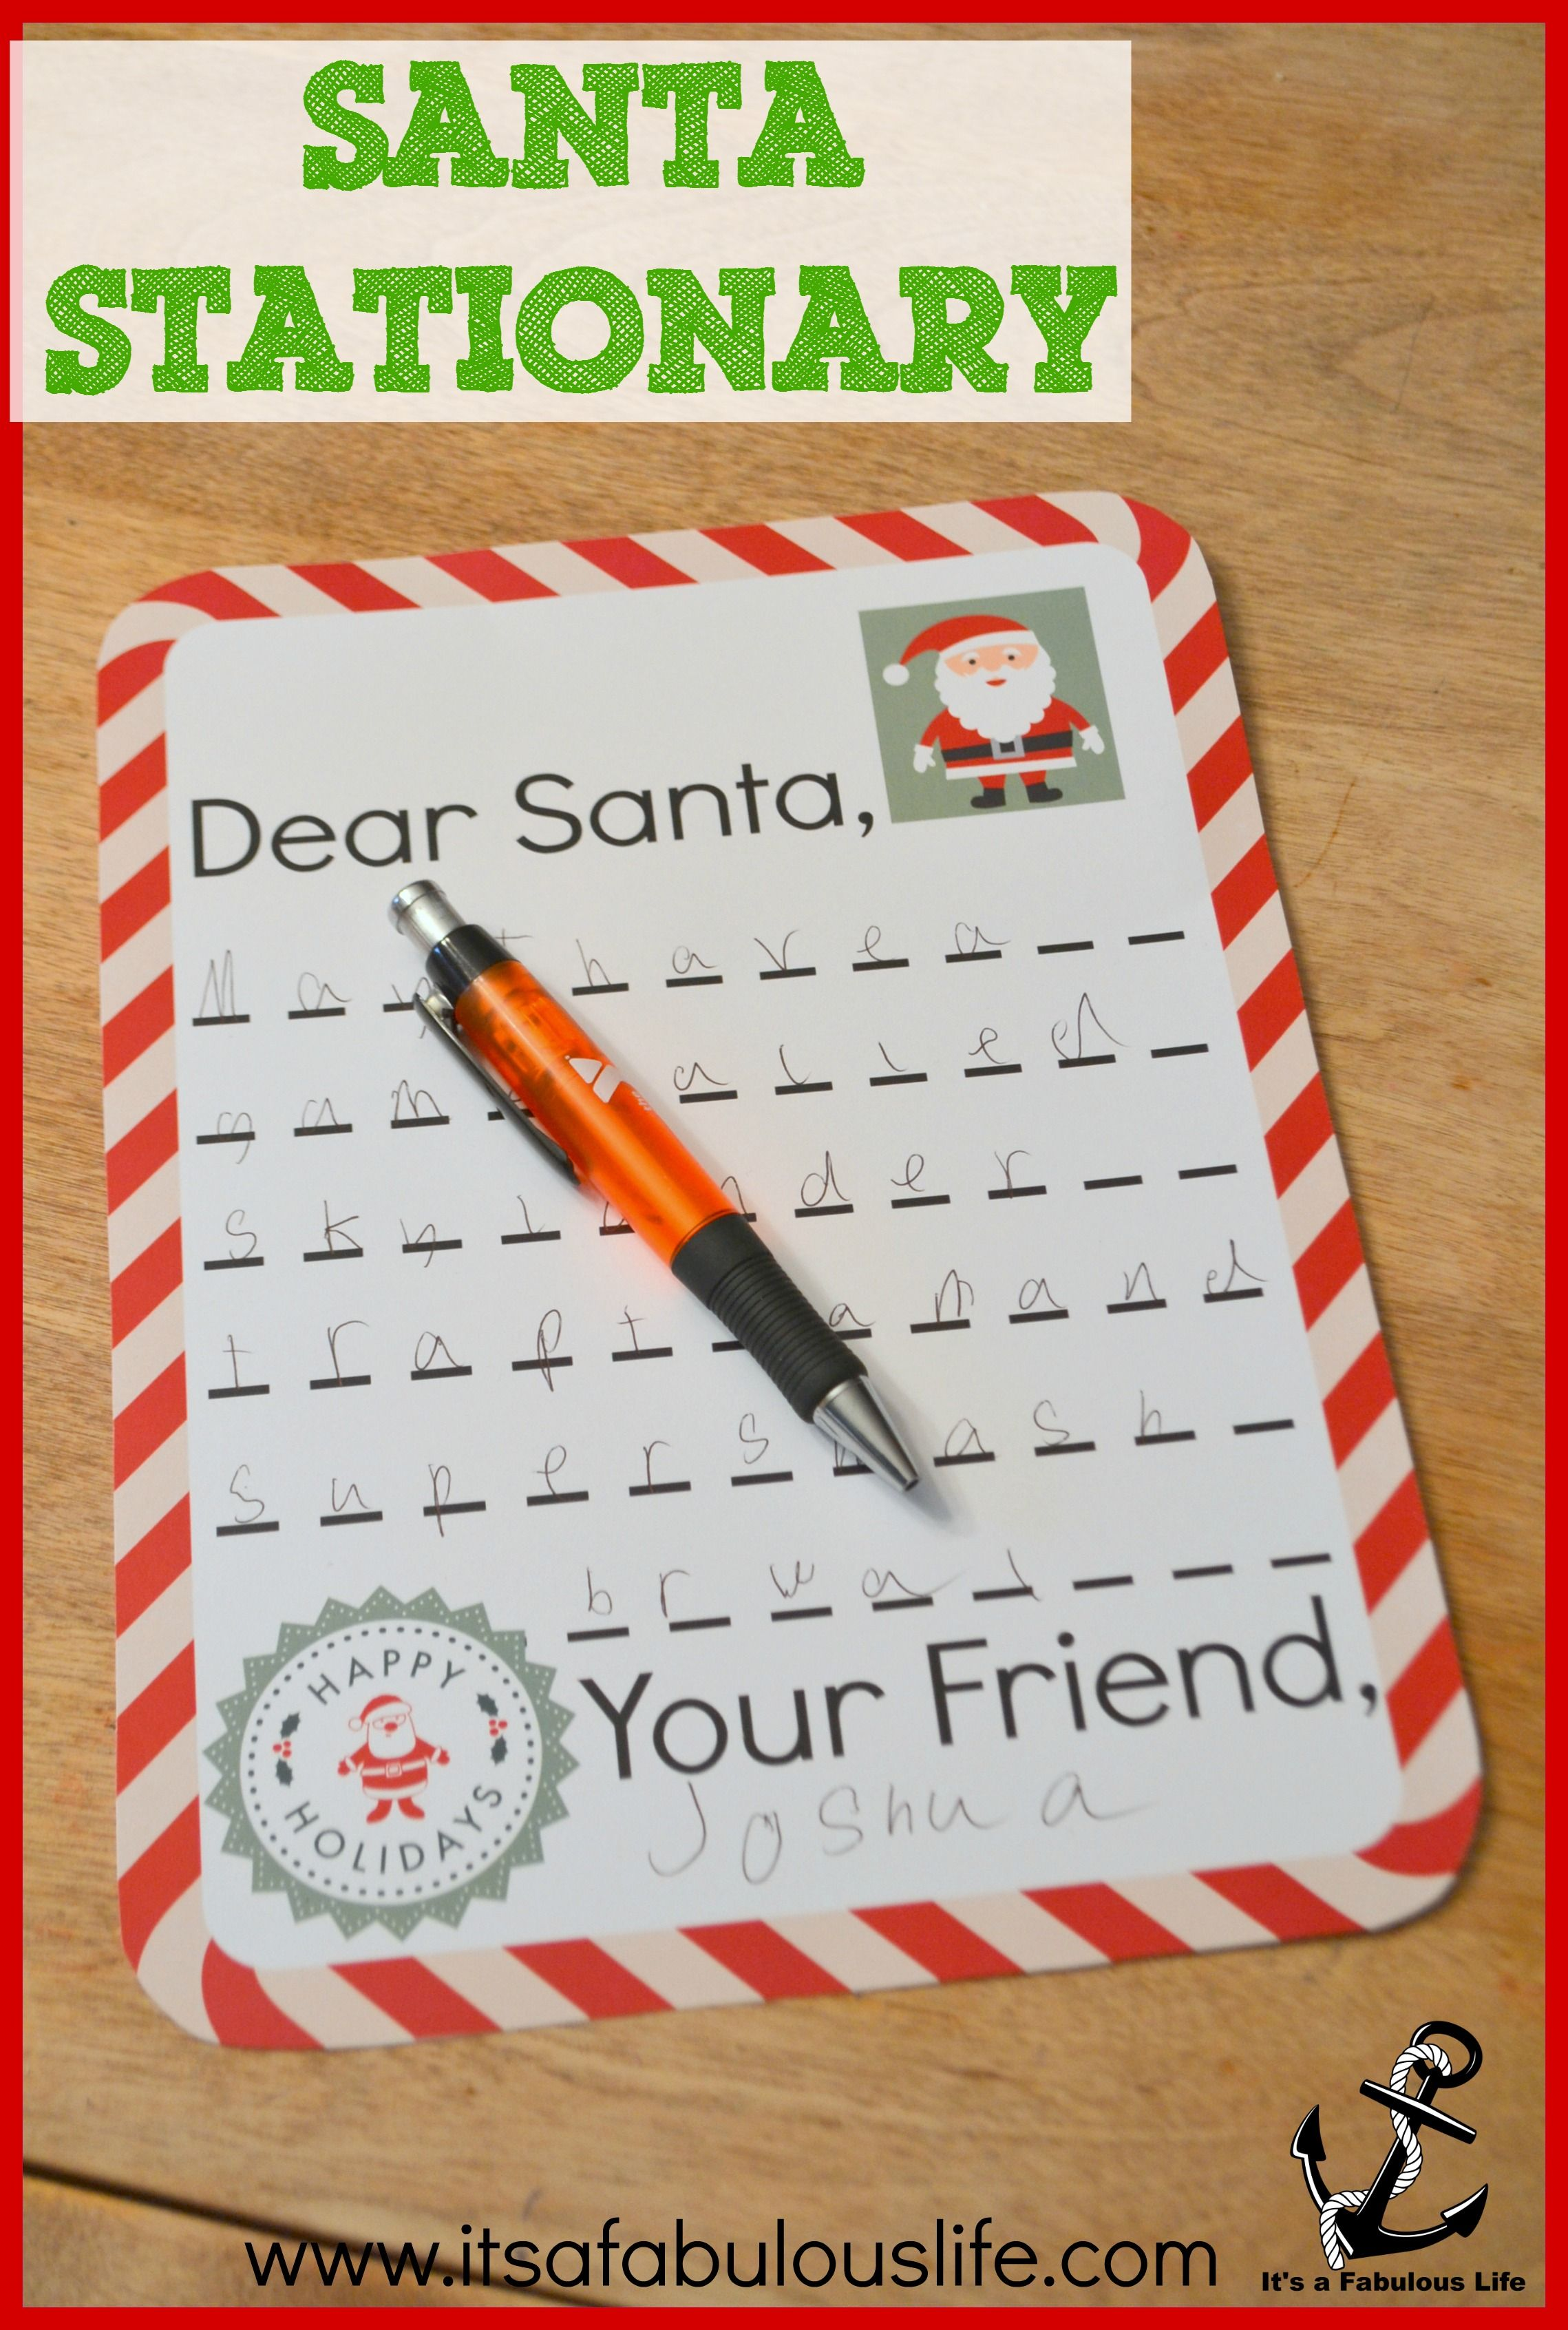 Where To Send Letters To Santa  Get A Response  Stationary Santa